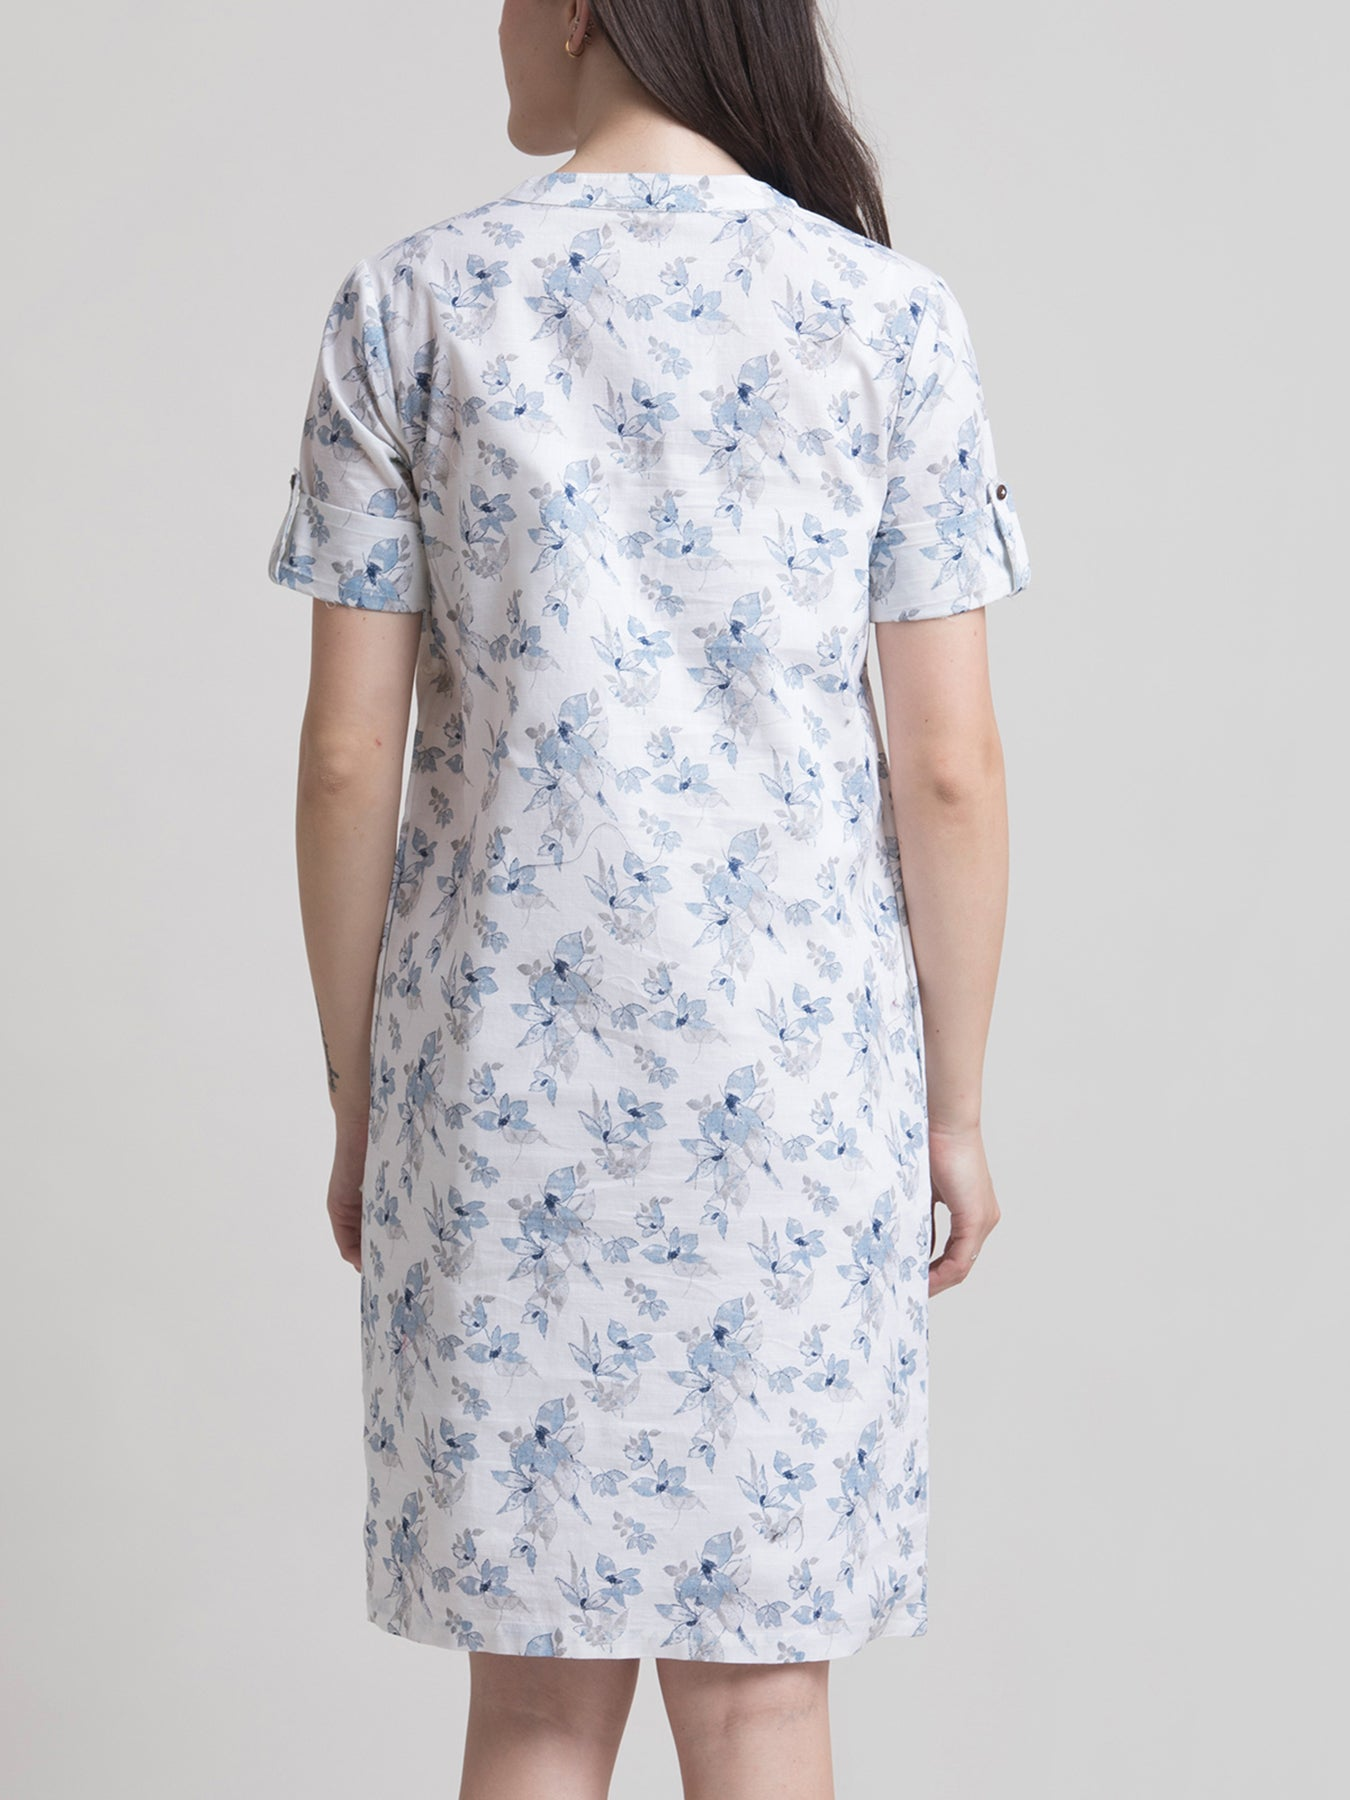 Linen Mandarin Collar Floral A Line Dress - Blue and White